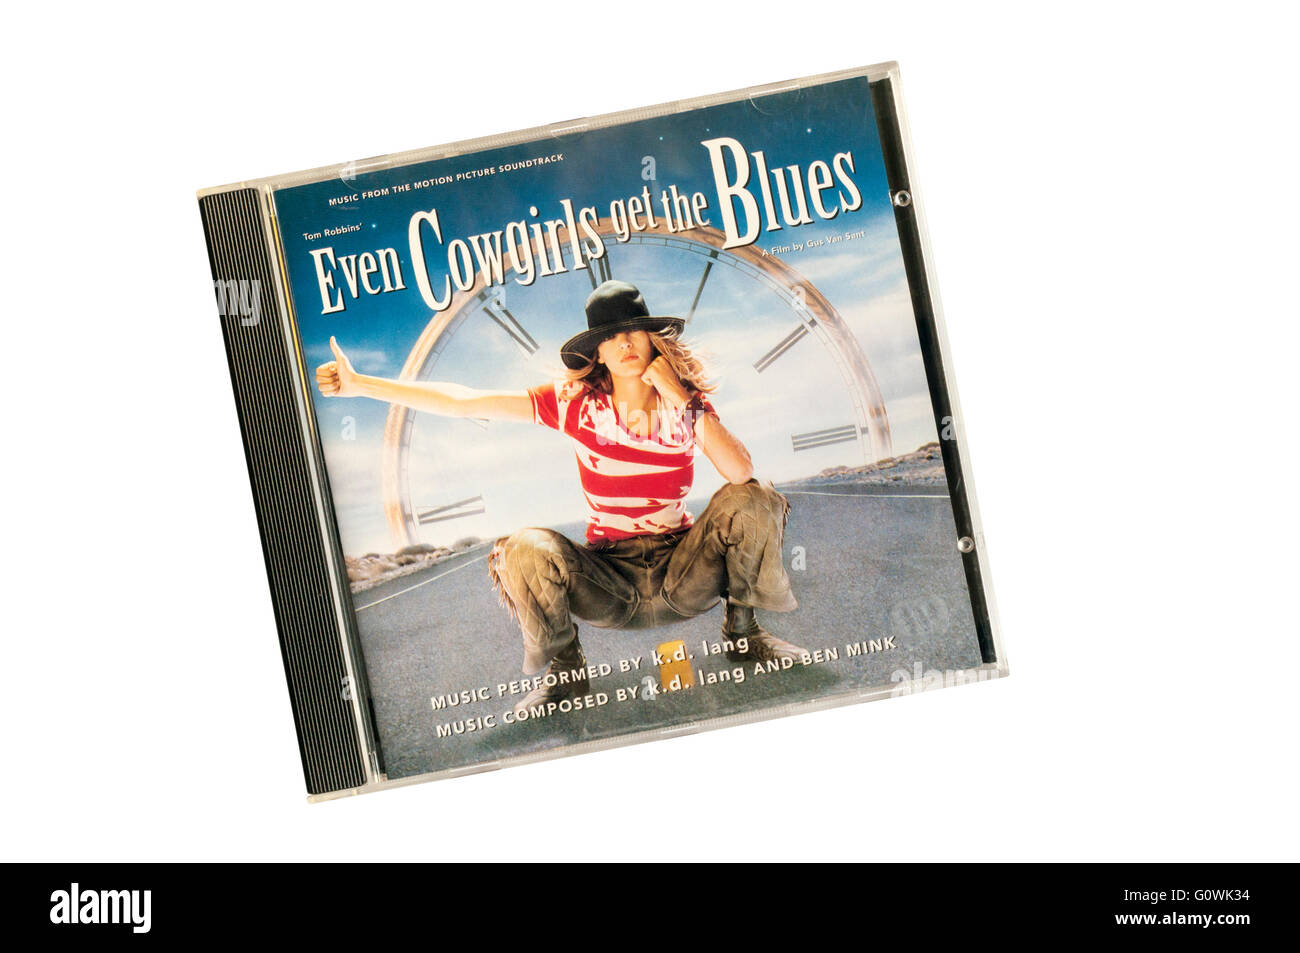 Even Cowgirls Get The Blues was k.d. lang's soundtrack to adaptation of Tom Robbins' novel of the same name. - Stock Image